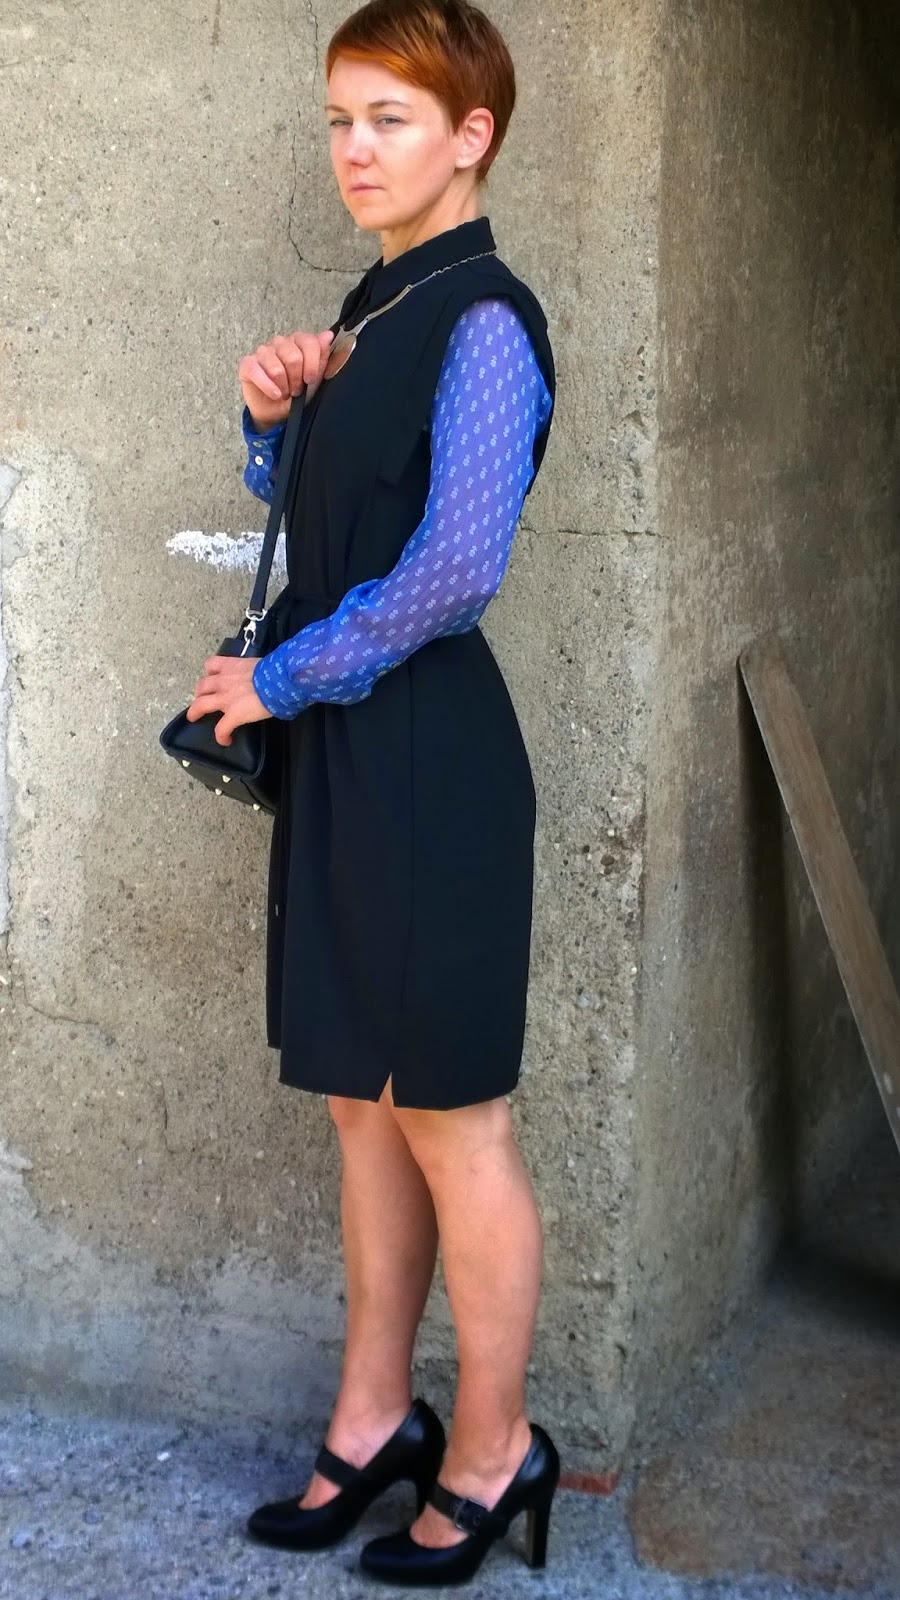 Black shirt dress, printed sheer blouse, black mary jane heels    Buttoned Up! Sheer Underneath   Funky Jungle, fashion & personal style blog